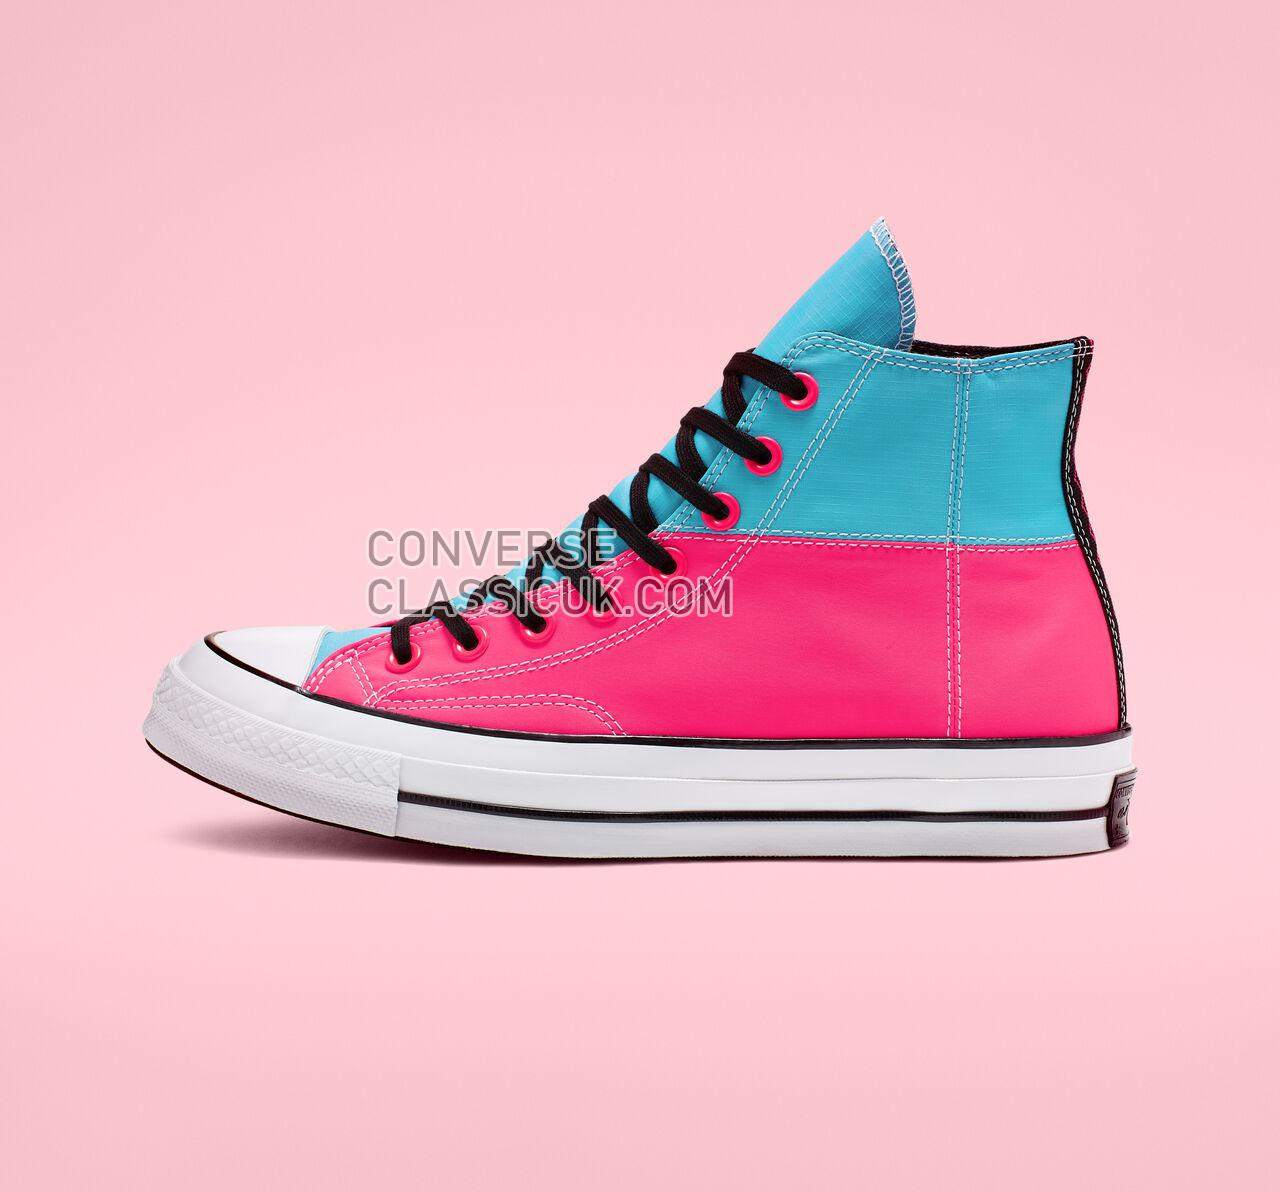 Converse Chuck 70 Get Tubed High Top Mens Womens Unisex 164087C Racer Pink/Gnarly Blue/White Shoes